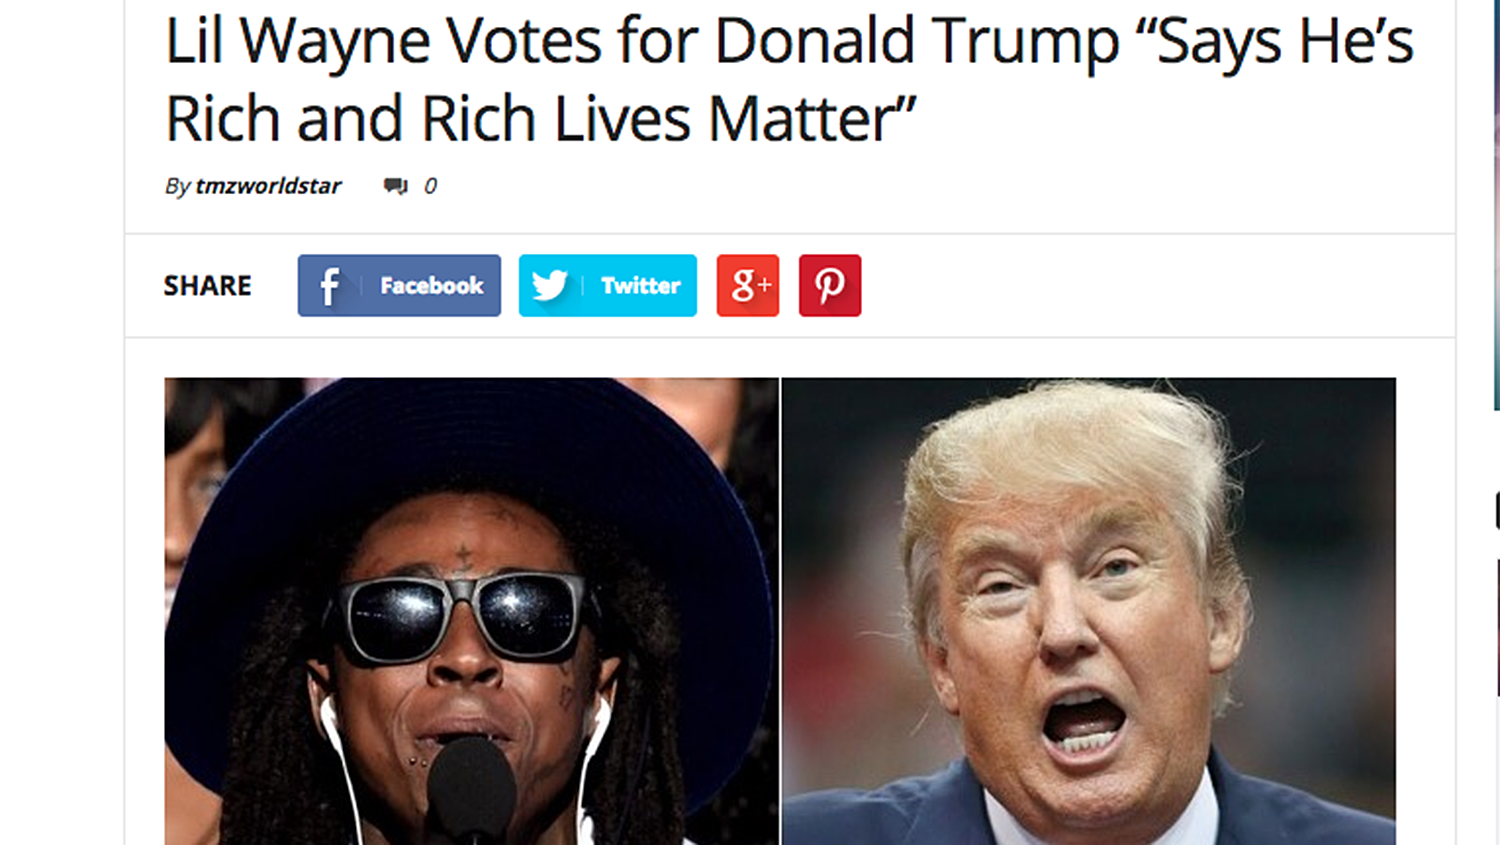 """Lil Wayne Votes for Donald Trump Says He's Rich and Rich Lives Matter."" A photo of Lil Wayne and Donald Trump."